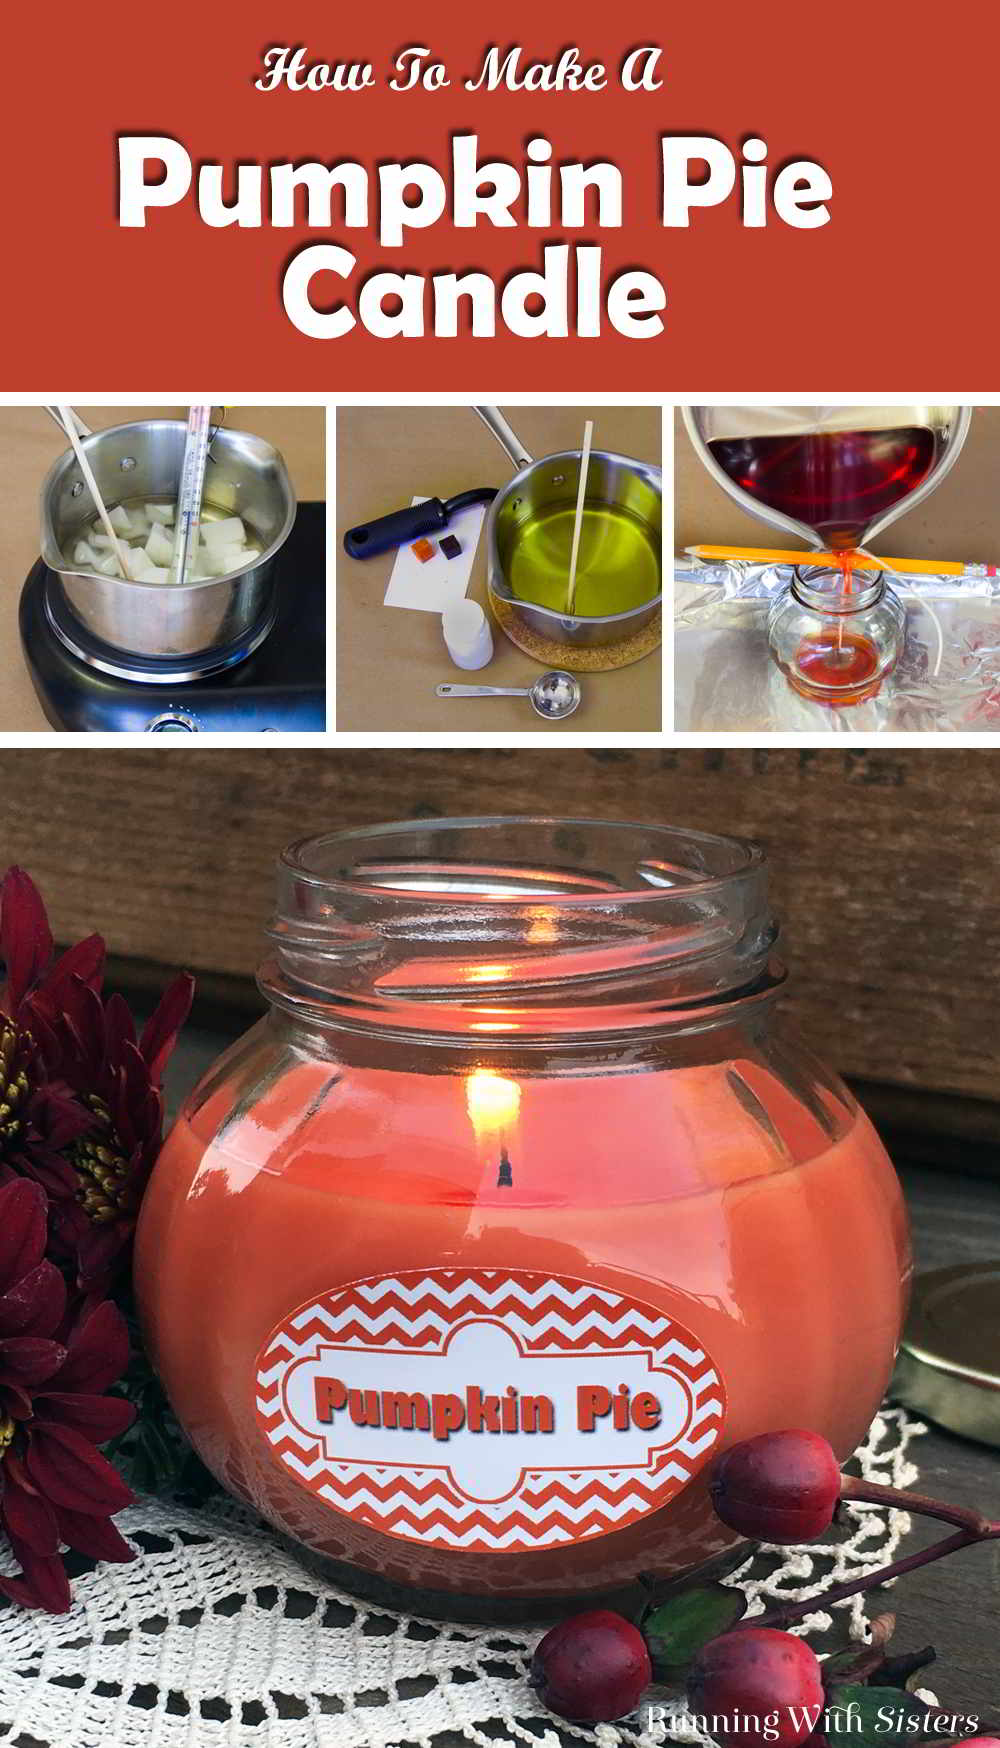 Learn to make this Pumpkin Pie Candle Jar. We'll share what wax to use for containers and show you how to wick a container to make a jar candle.